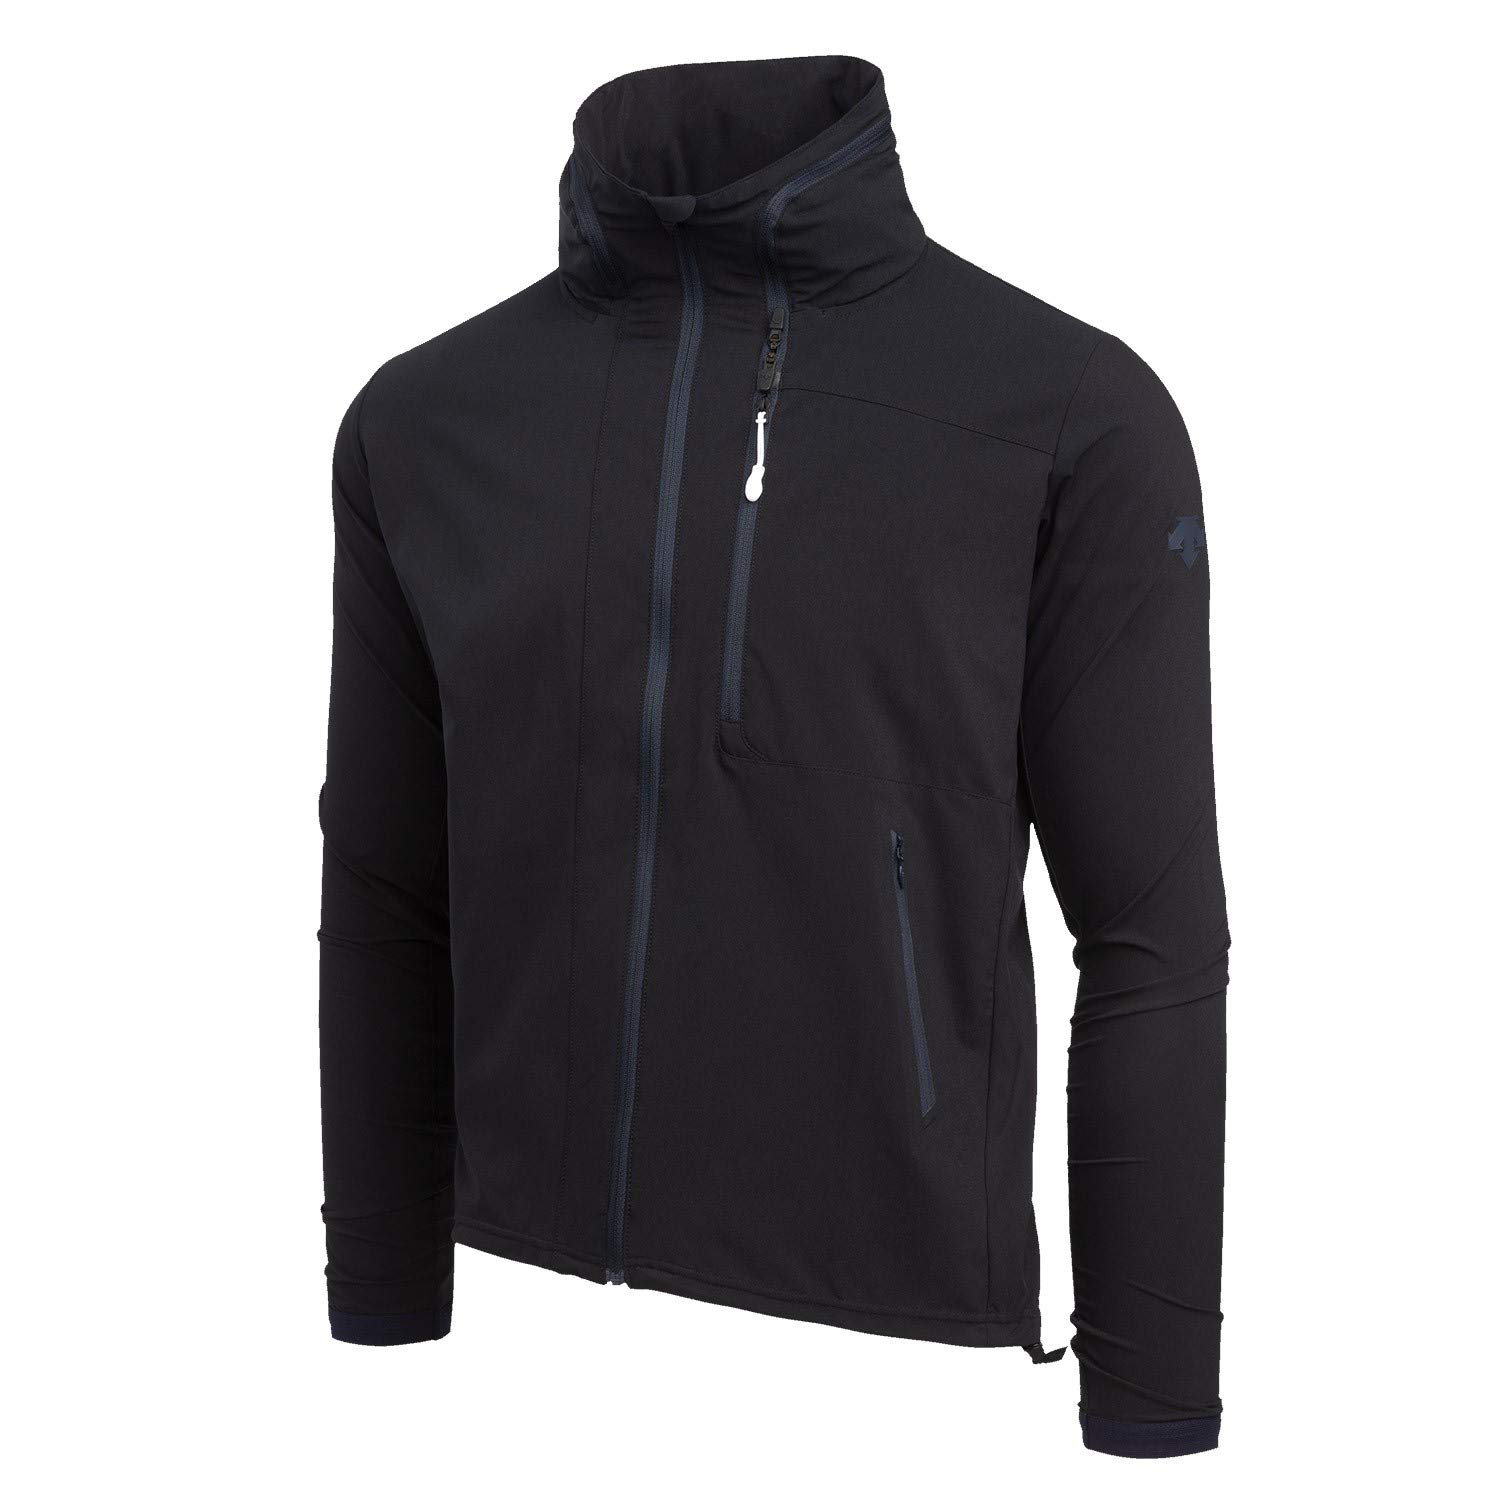 Descente Men's x DSPTCH Packable Jacket for Hiking and Traveling Graphite Navy image 1